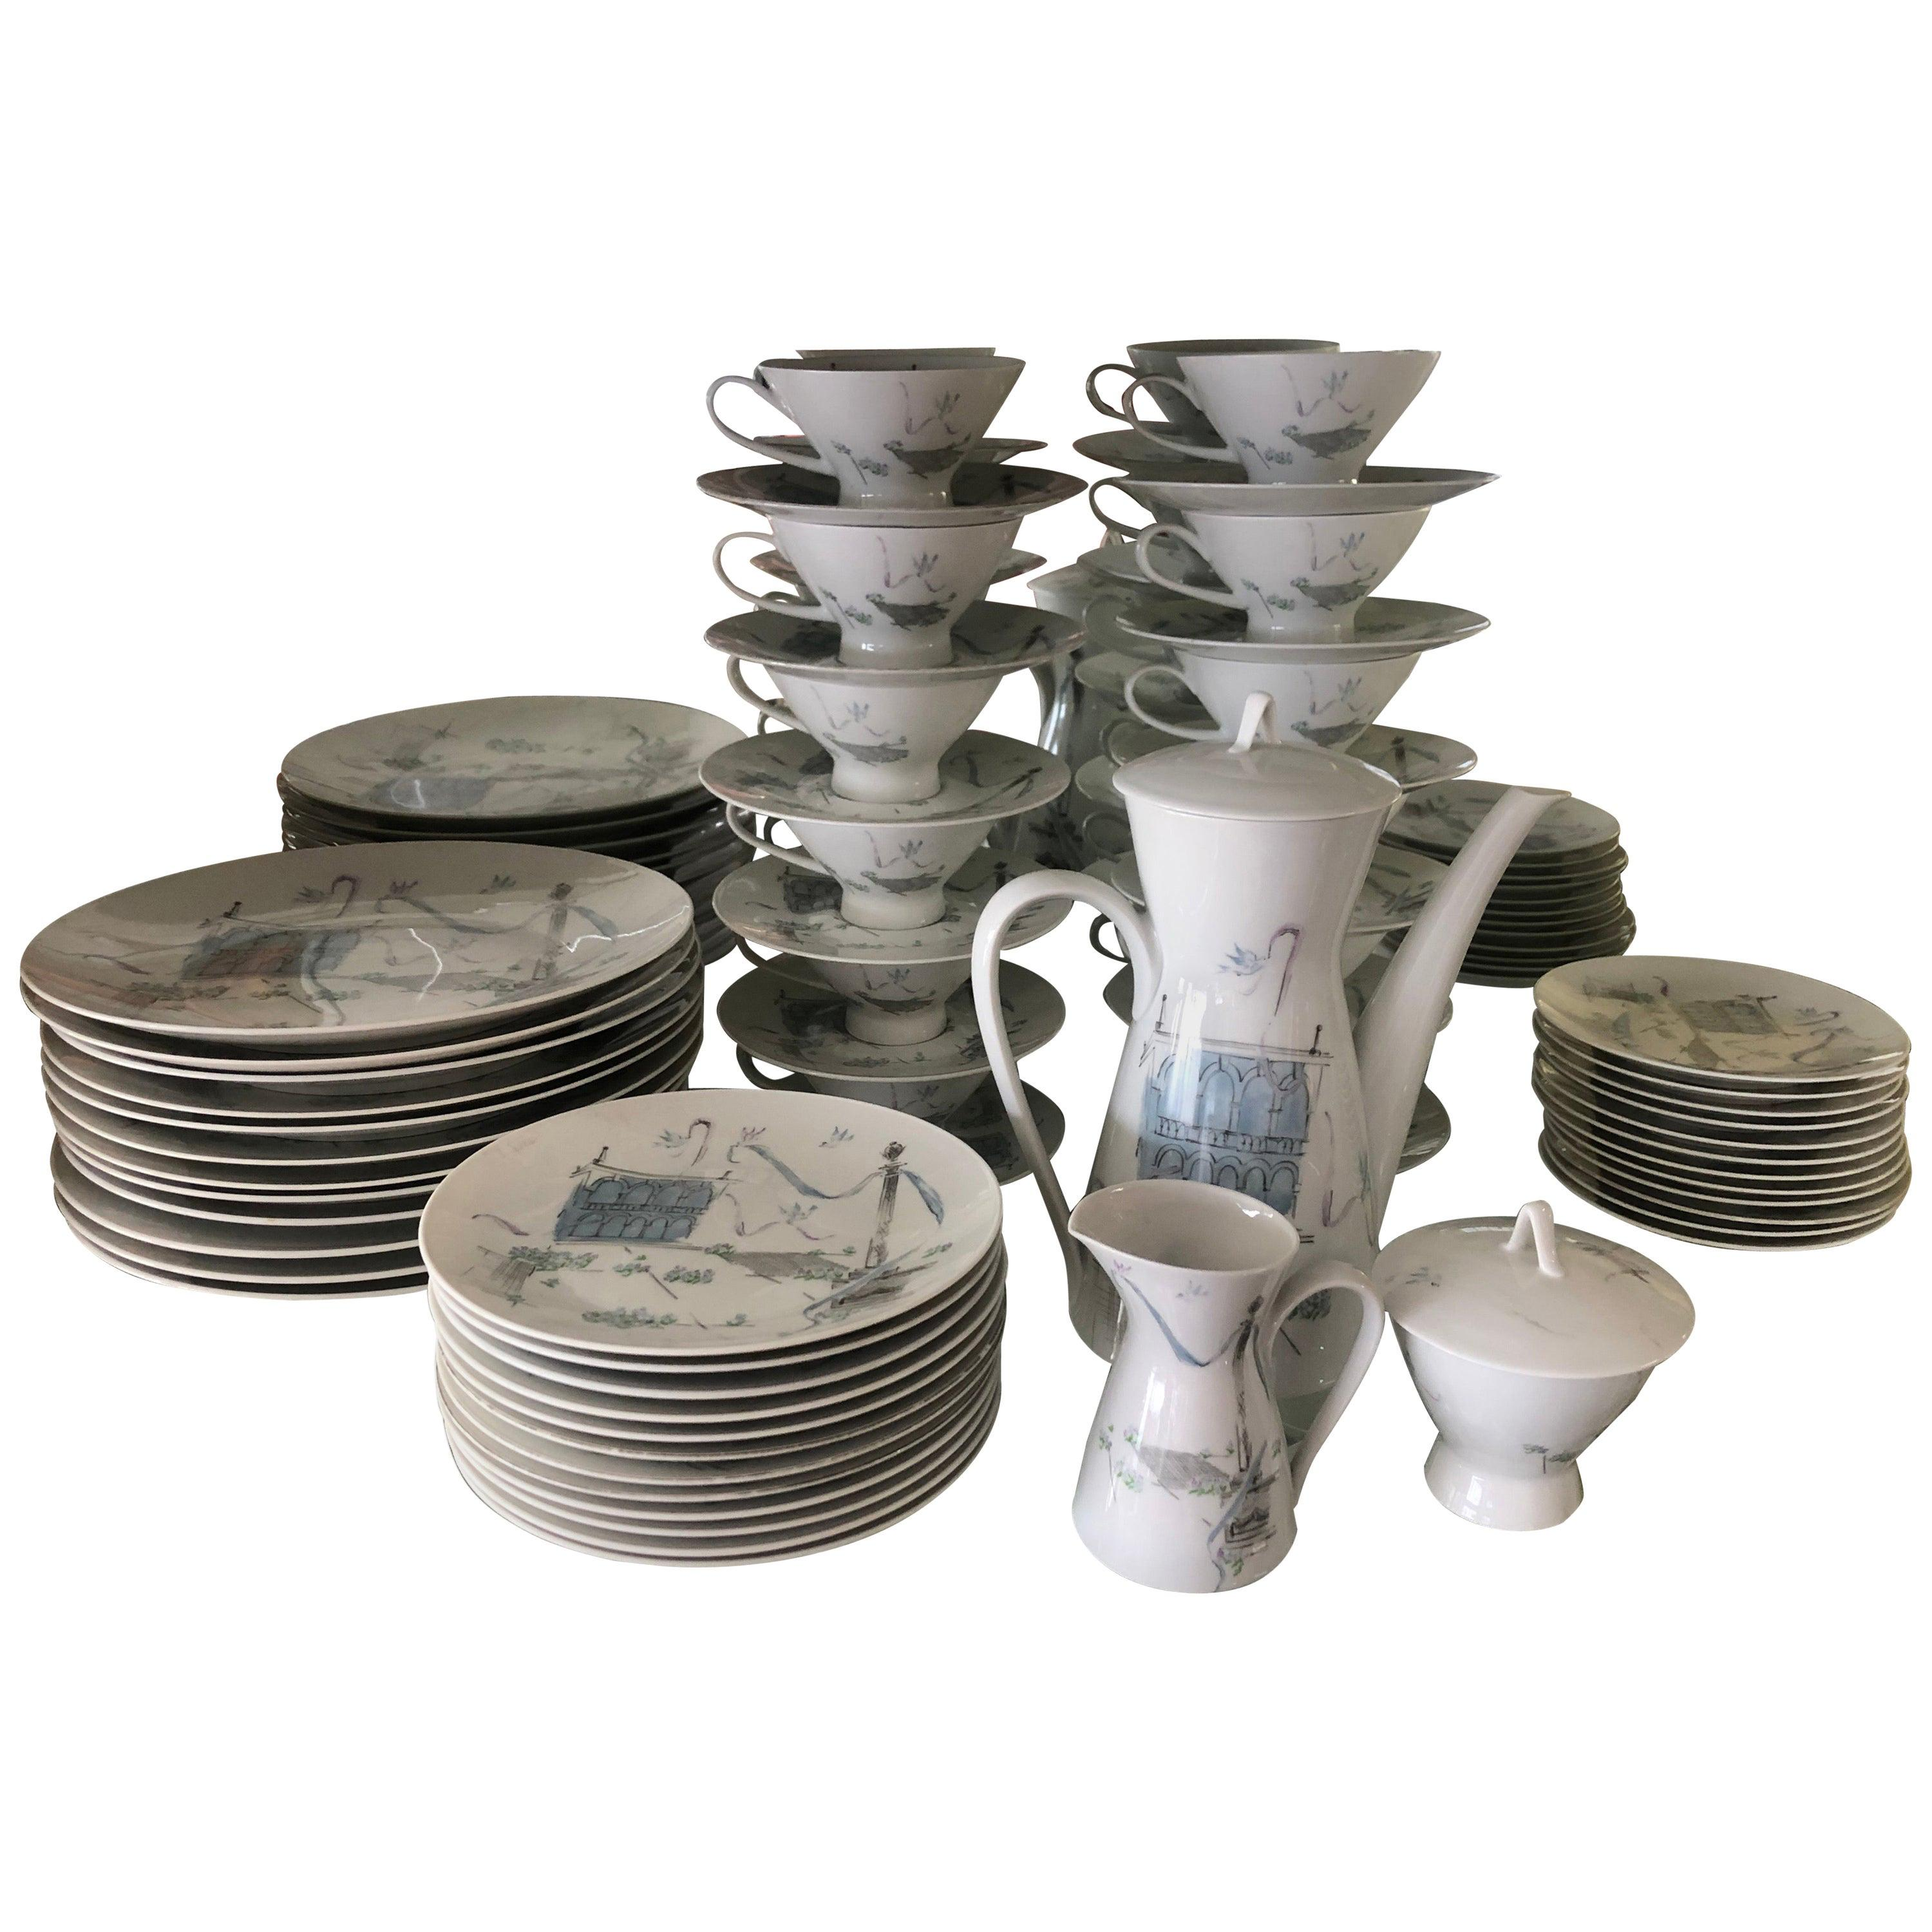 """Rosenthal by Artist Raymond Loewy """"Plaza"""" Service for 12 China Dinner Set"""